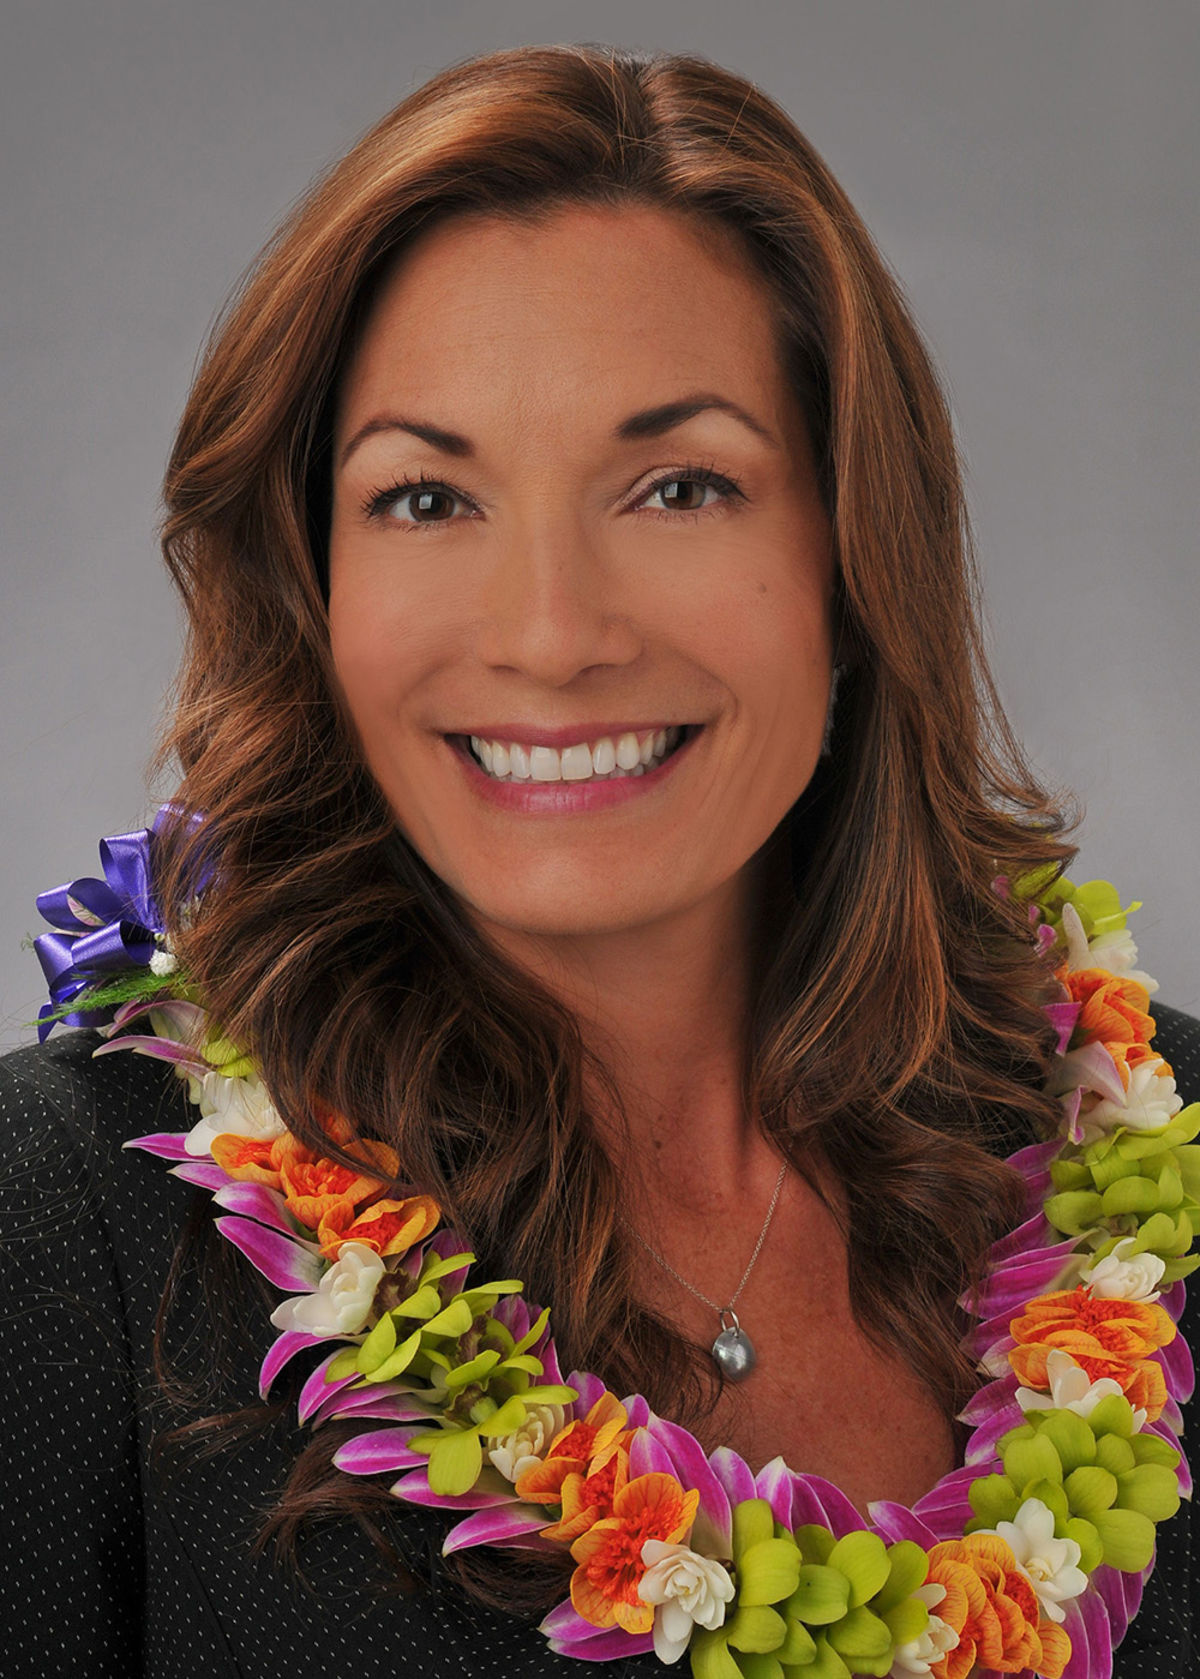 Hawaii Convention Center General Manager Teri Orton, recipient of the Women in Lodging & Tourism – Hawaii Chapter's 2018 Woman of the Year Award.